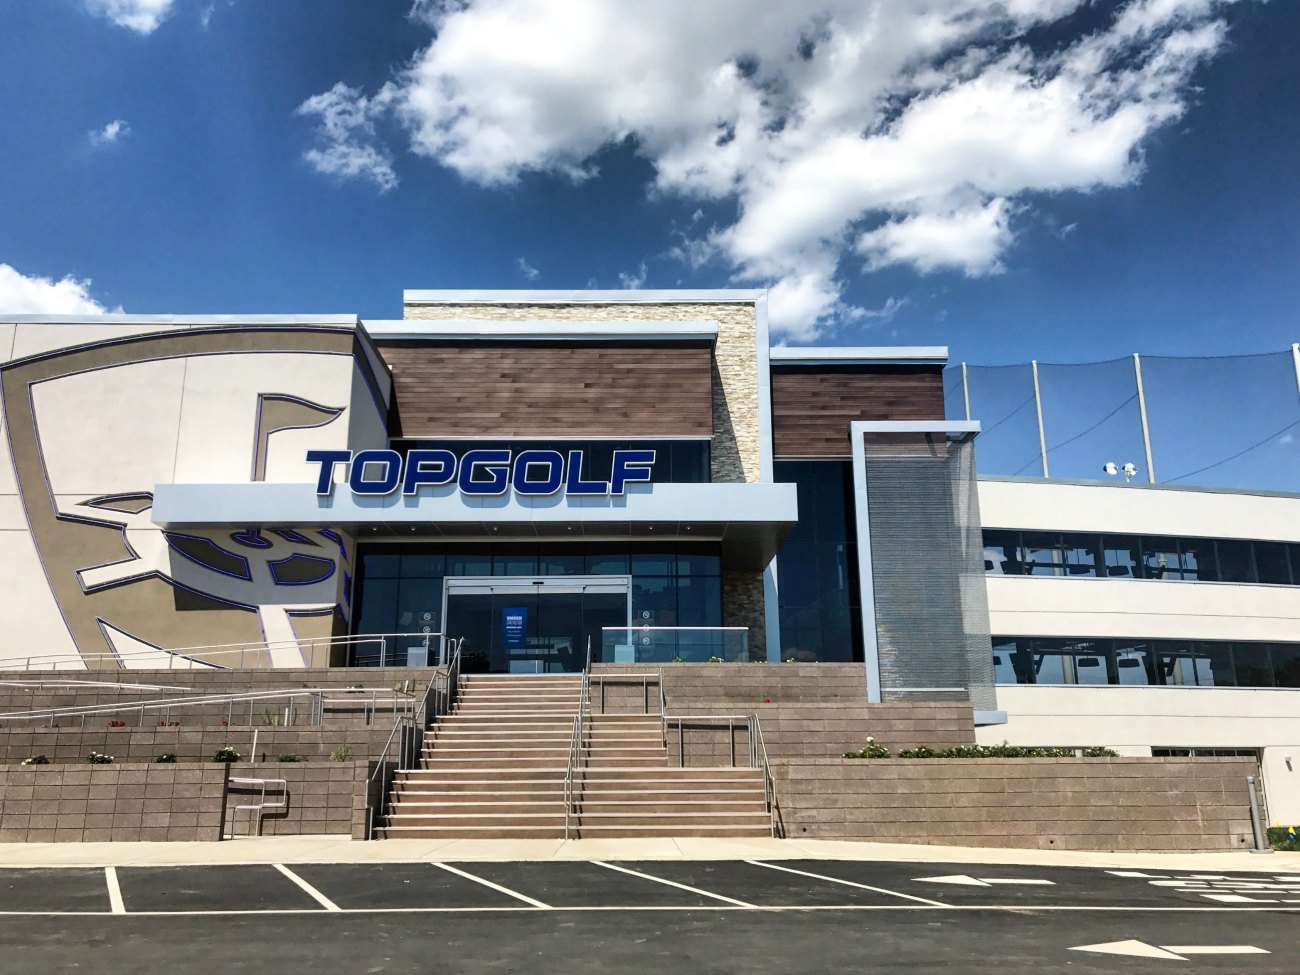 The must-do of the summer opens June 9. Take a look inside Topgolf